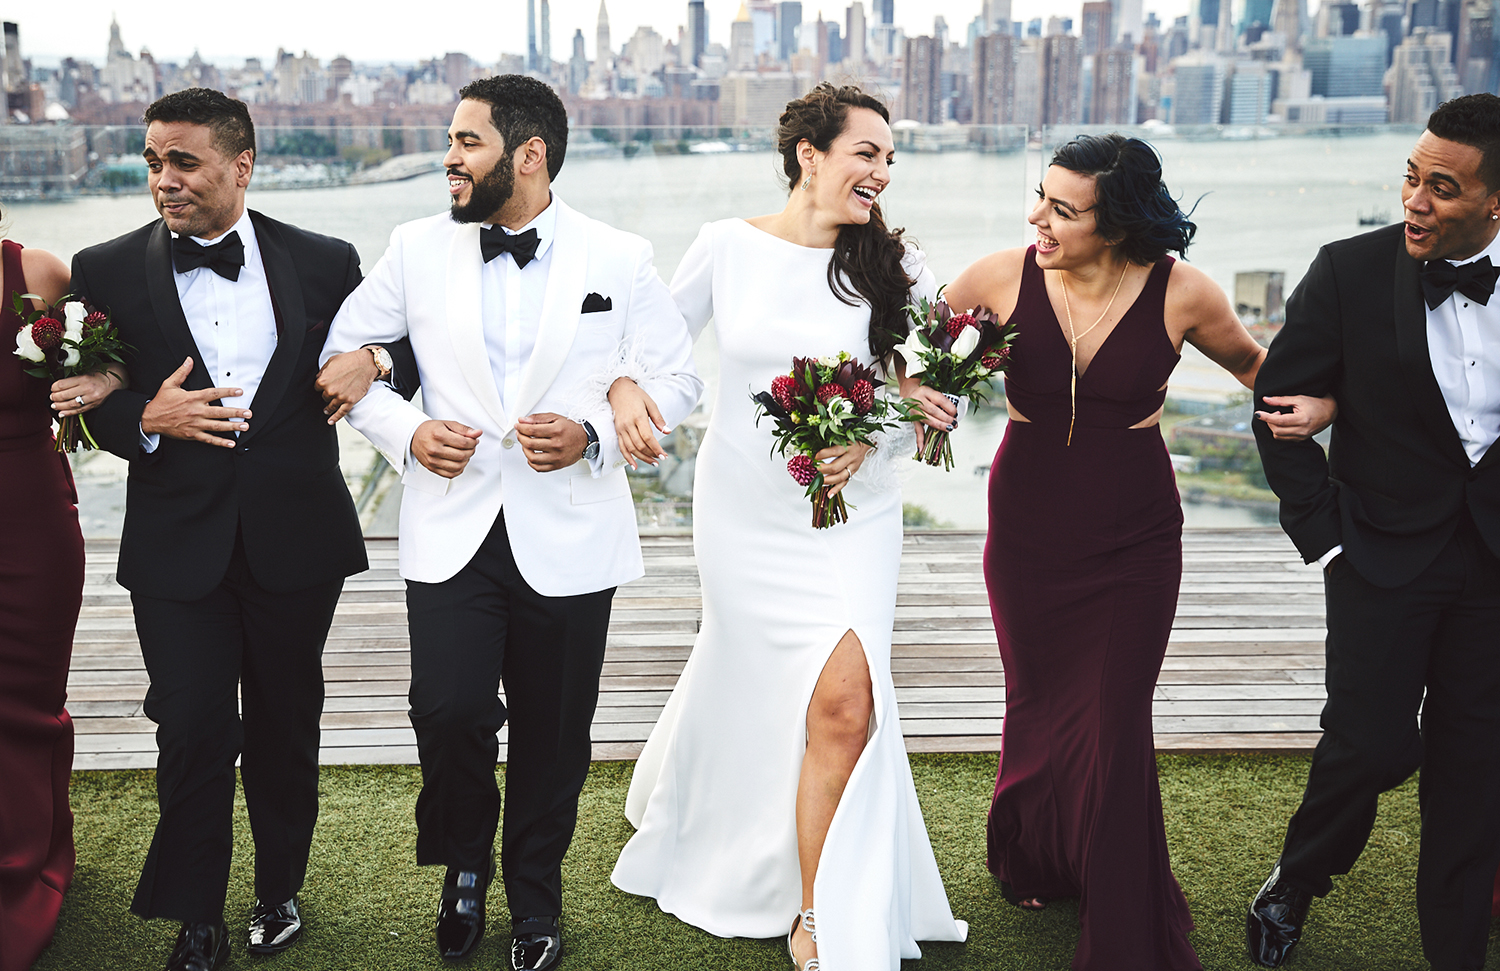 170930_WilliamValeWeddingPhotography_BrooklynWeddingPhotographer_By_BriJohnsonWeddings_0103.jpg